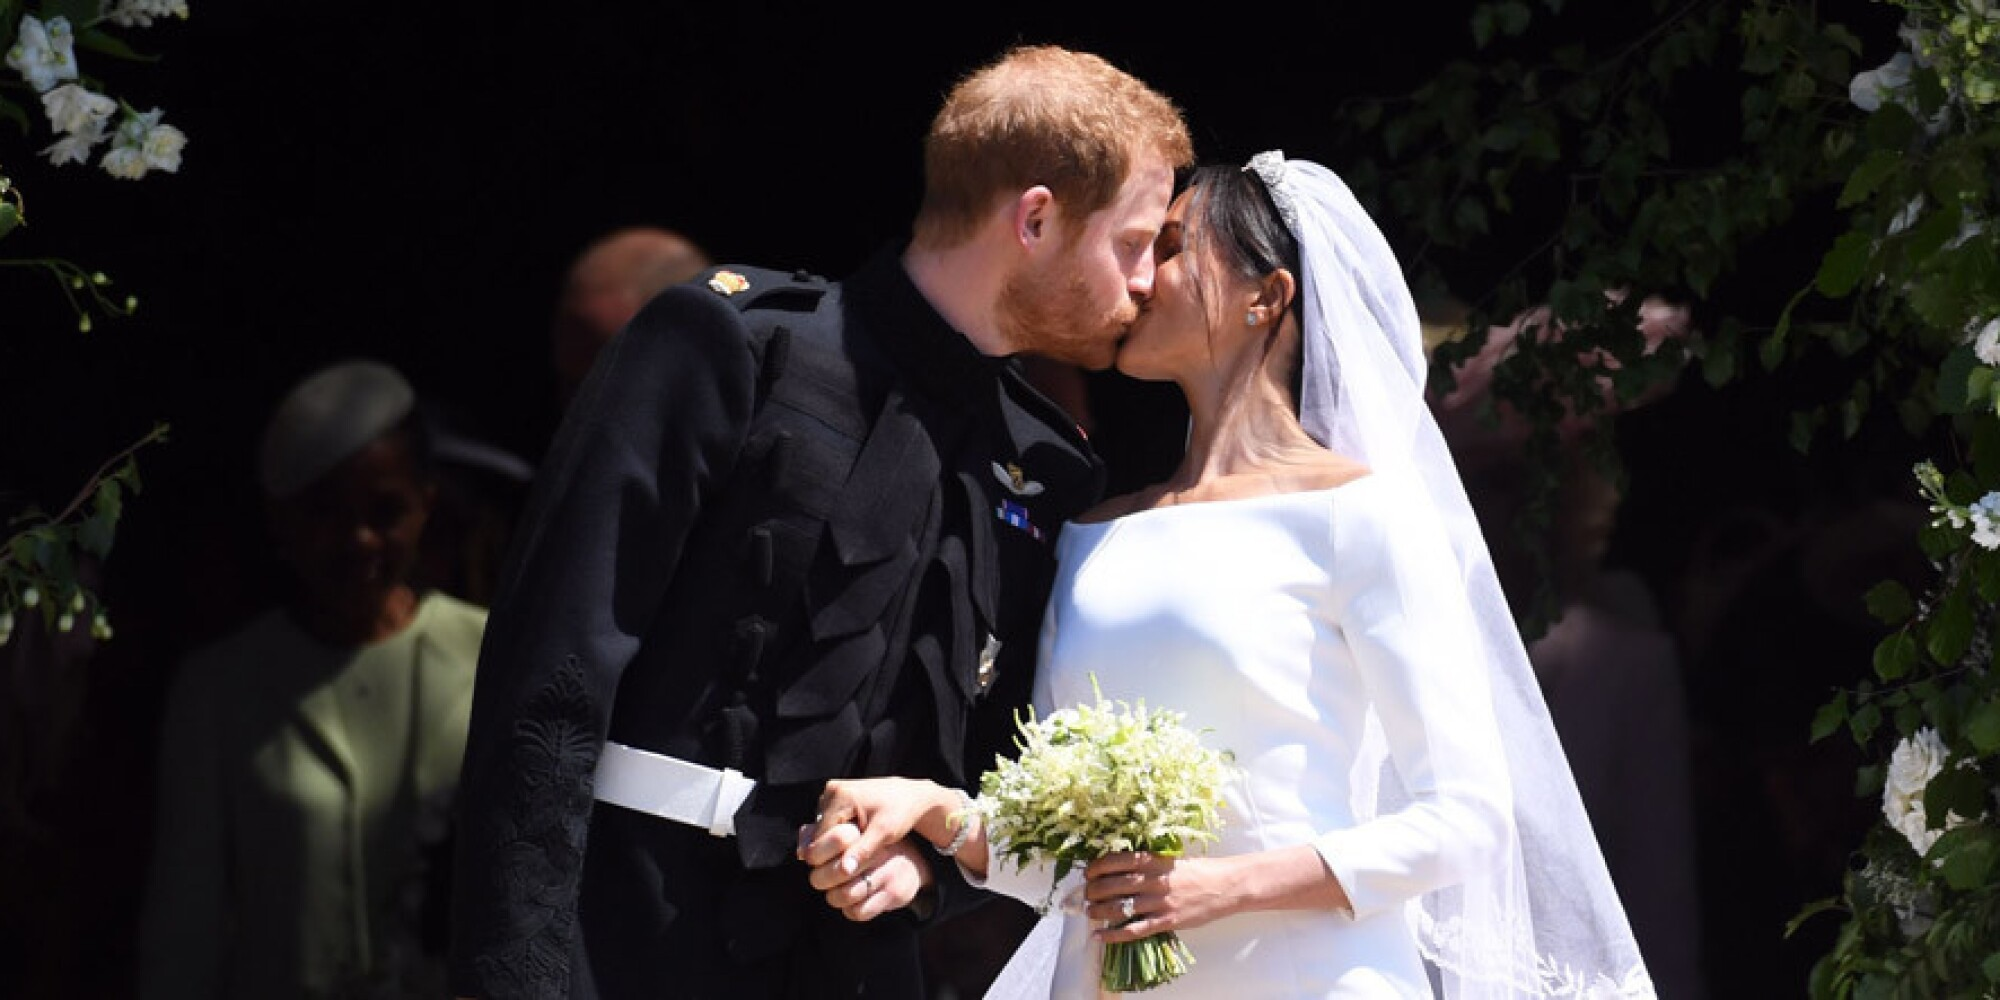 Prince Harry and Meghan Markle are wed amid pomp and pageantry at Windsor chapel